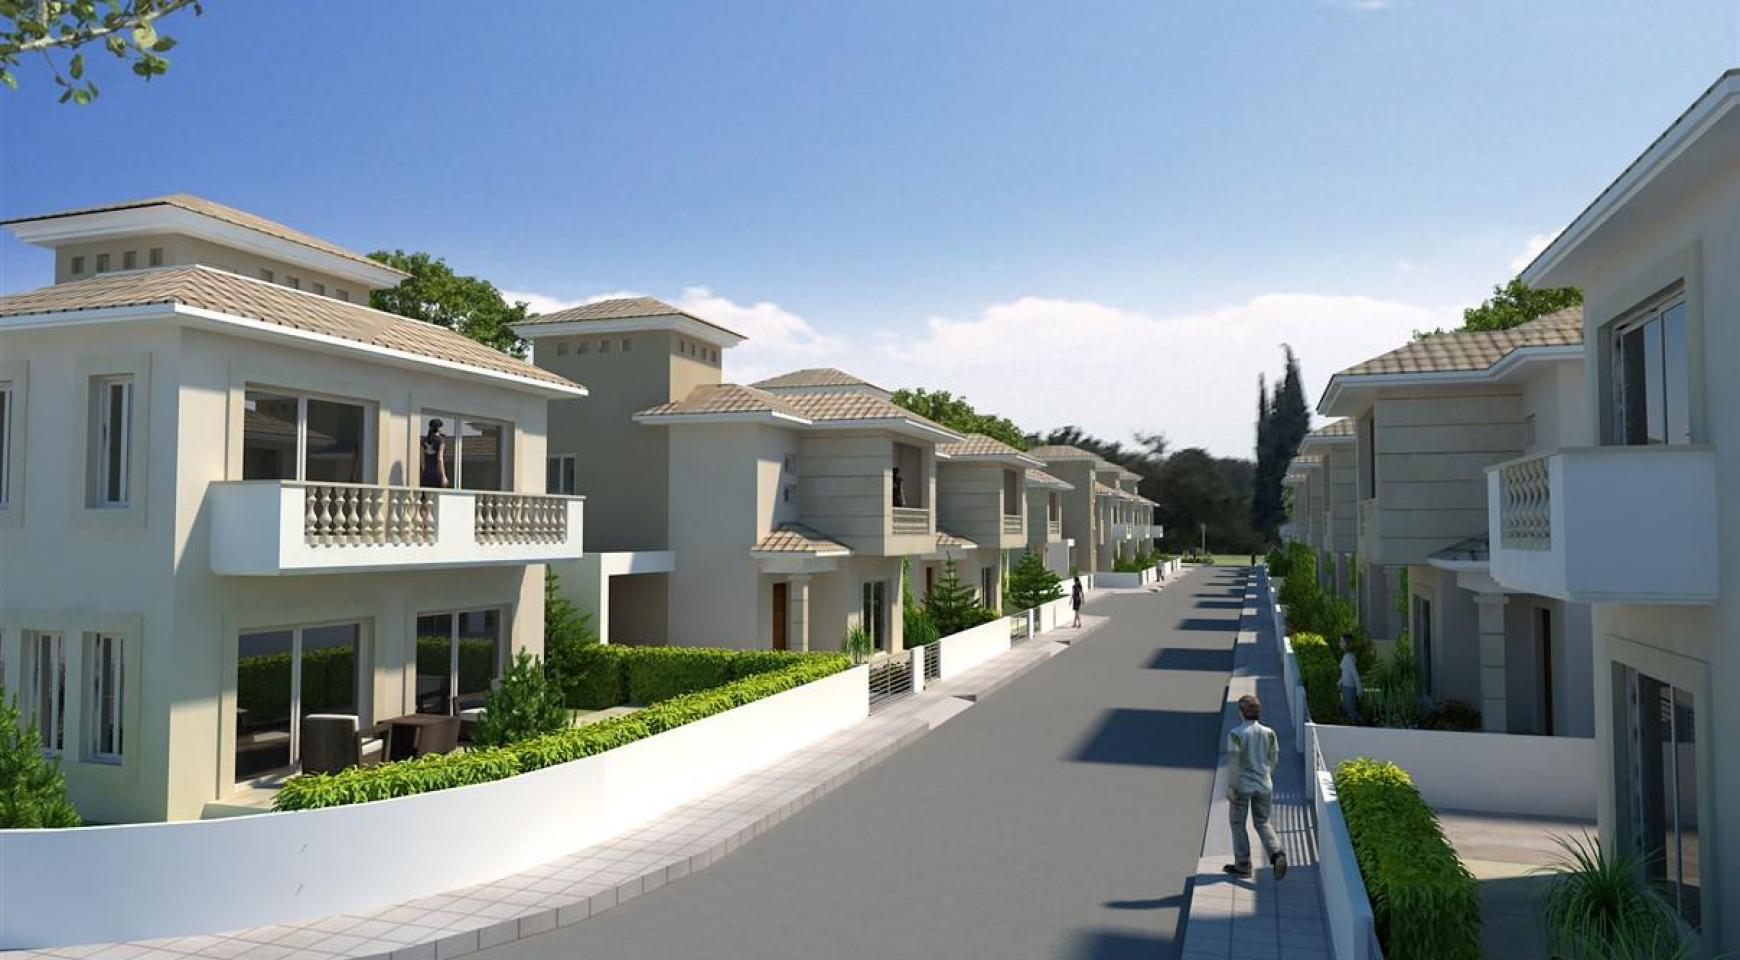 3 Bedroom Villa in a New Project - 20